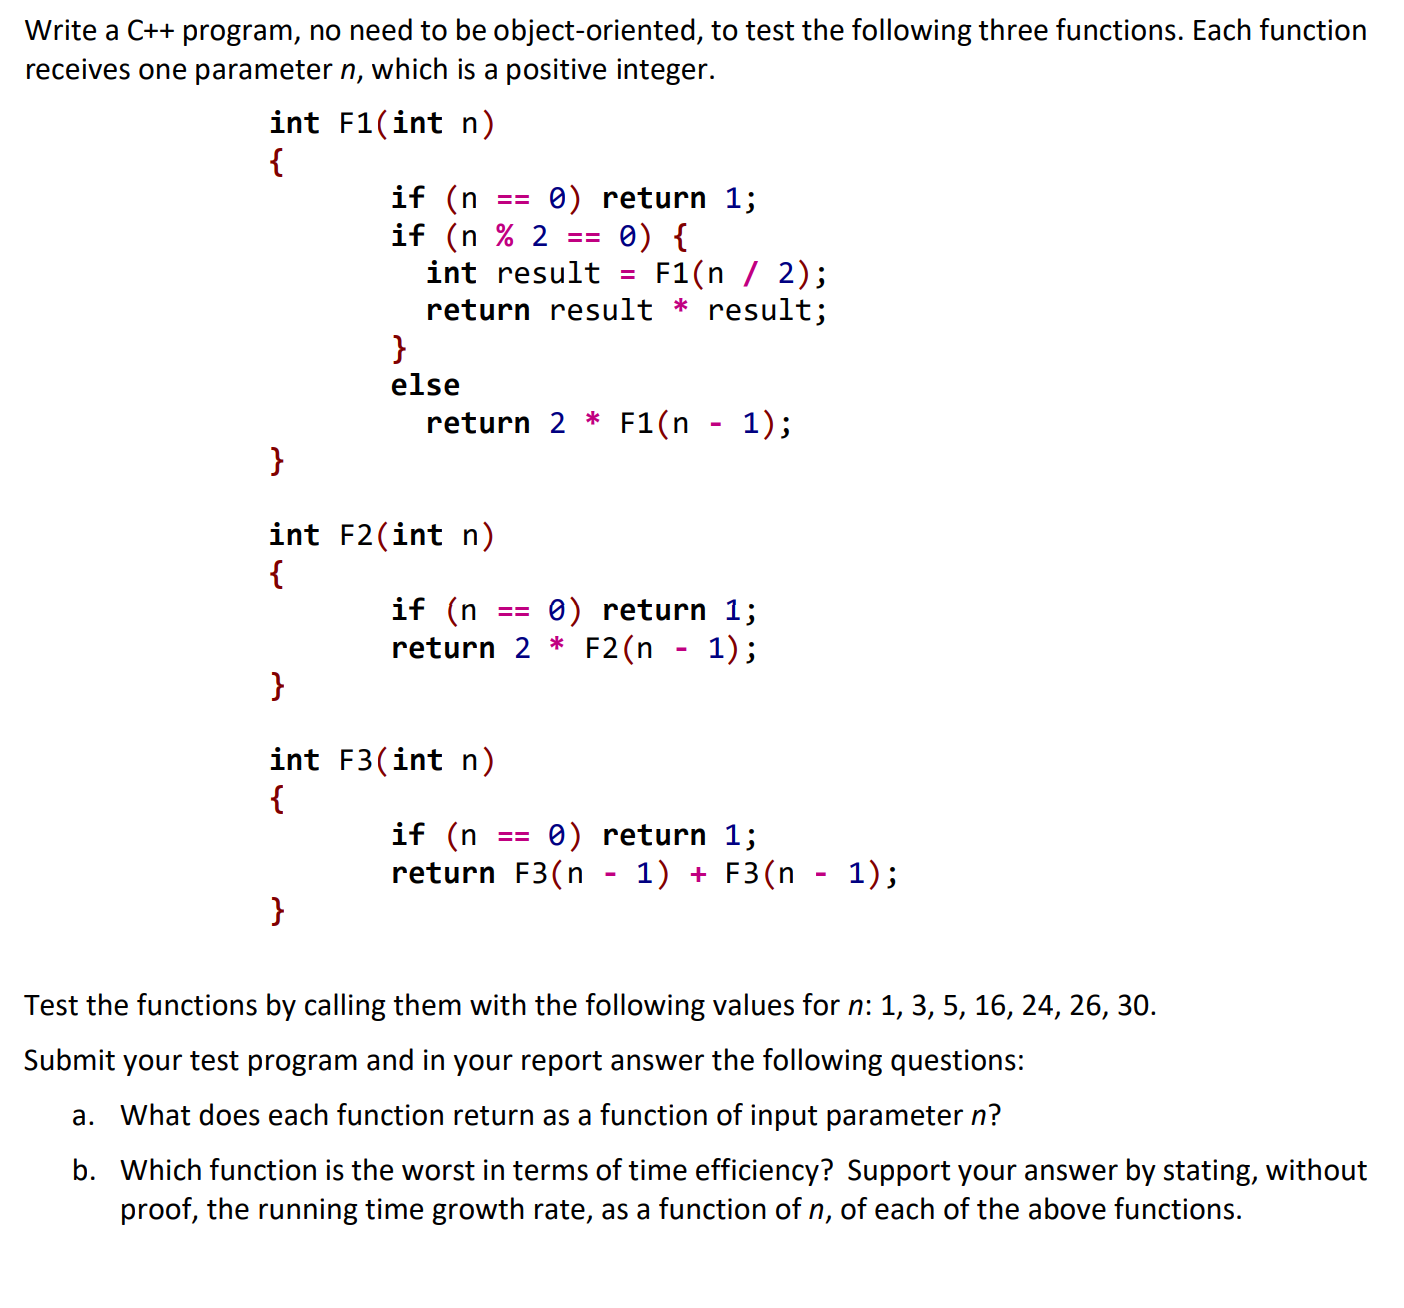 Write a C++ program, no need to be object-oriented, to test the following three functions. Each function receives one parameter n, which is a positive integer. int F1(int n) { if (n if (n % 2 int result 0) return 1; 0) { F1(n / 2); return result * result; else 1); return 2 * F1(n } int F2(int n) { if (n return 2 * F2(n - 1); 0) return 1; int F3(int n) { if (n 0) return 1; return F3(n - 1) + F3(n - 1); } Test the functions by calling them with the following values for n: 1, 3, 5, 16, 24, 26, 30. Submit your test program and in your report answer the following questions: a. What does each function return as a function of input parameter n? b. Which function is the worst in terms of time efficiency? Support your answer by stating, without proof, the running time growth rate, as a function of n, of each of the above functions.